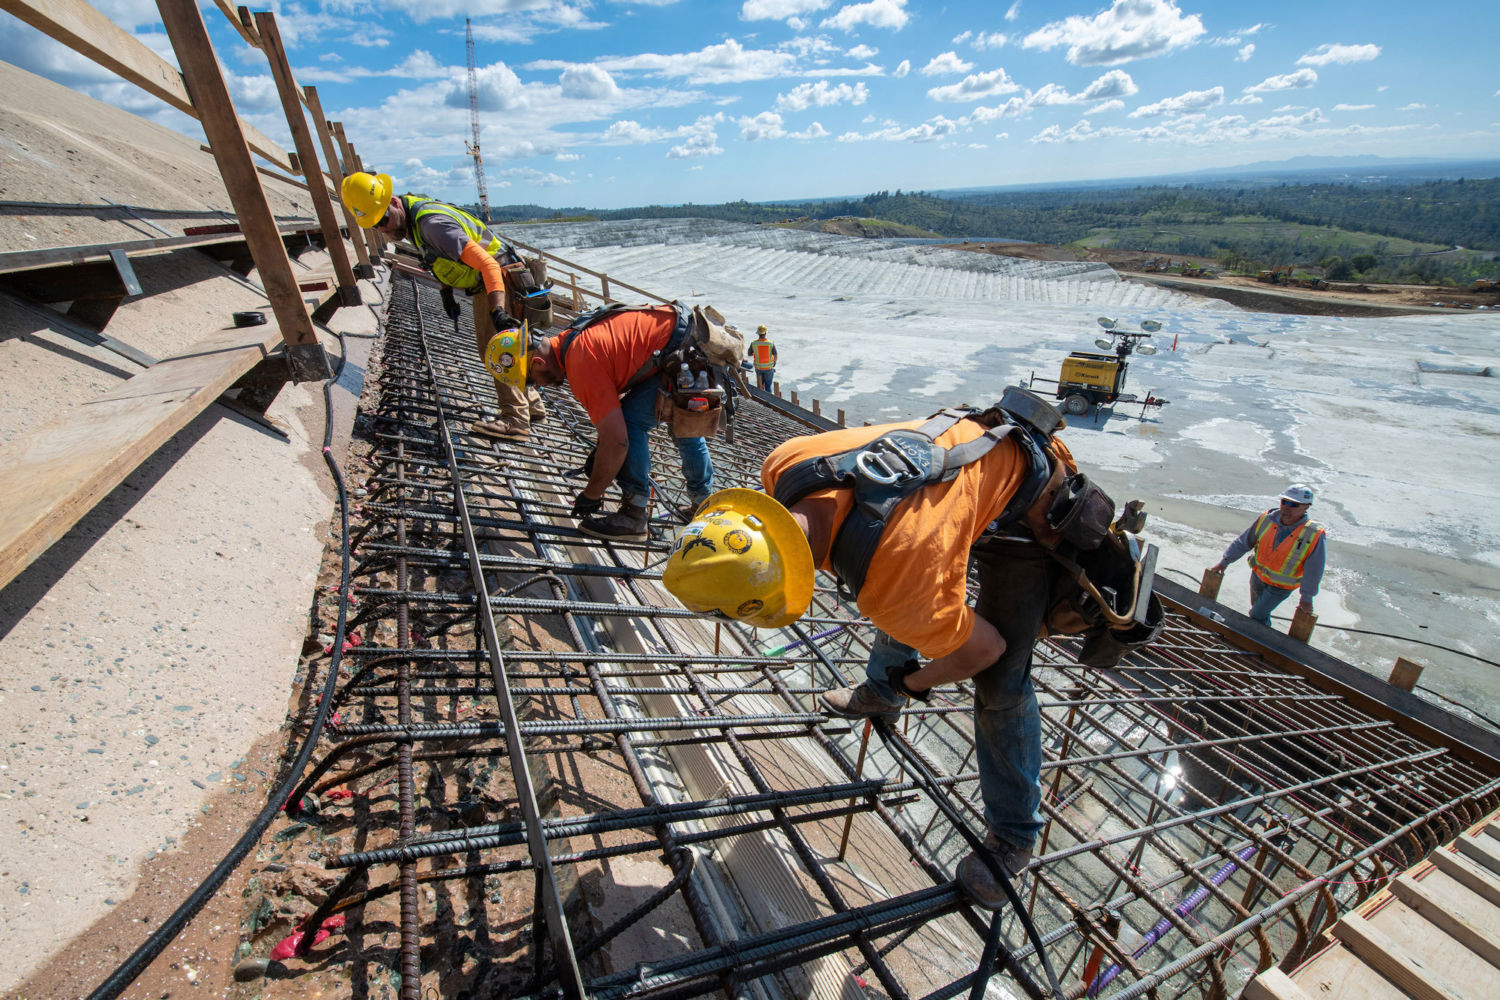 In an Era of Extreme Weather, Concerns Grow Over Dam Safety - Yale E360